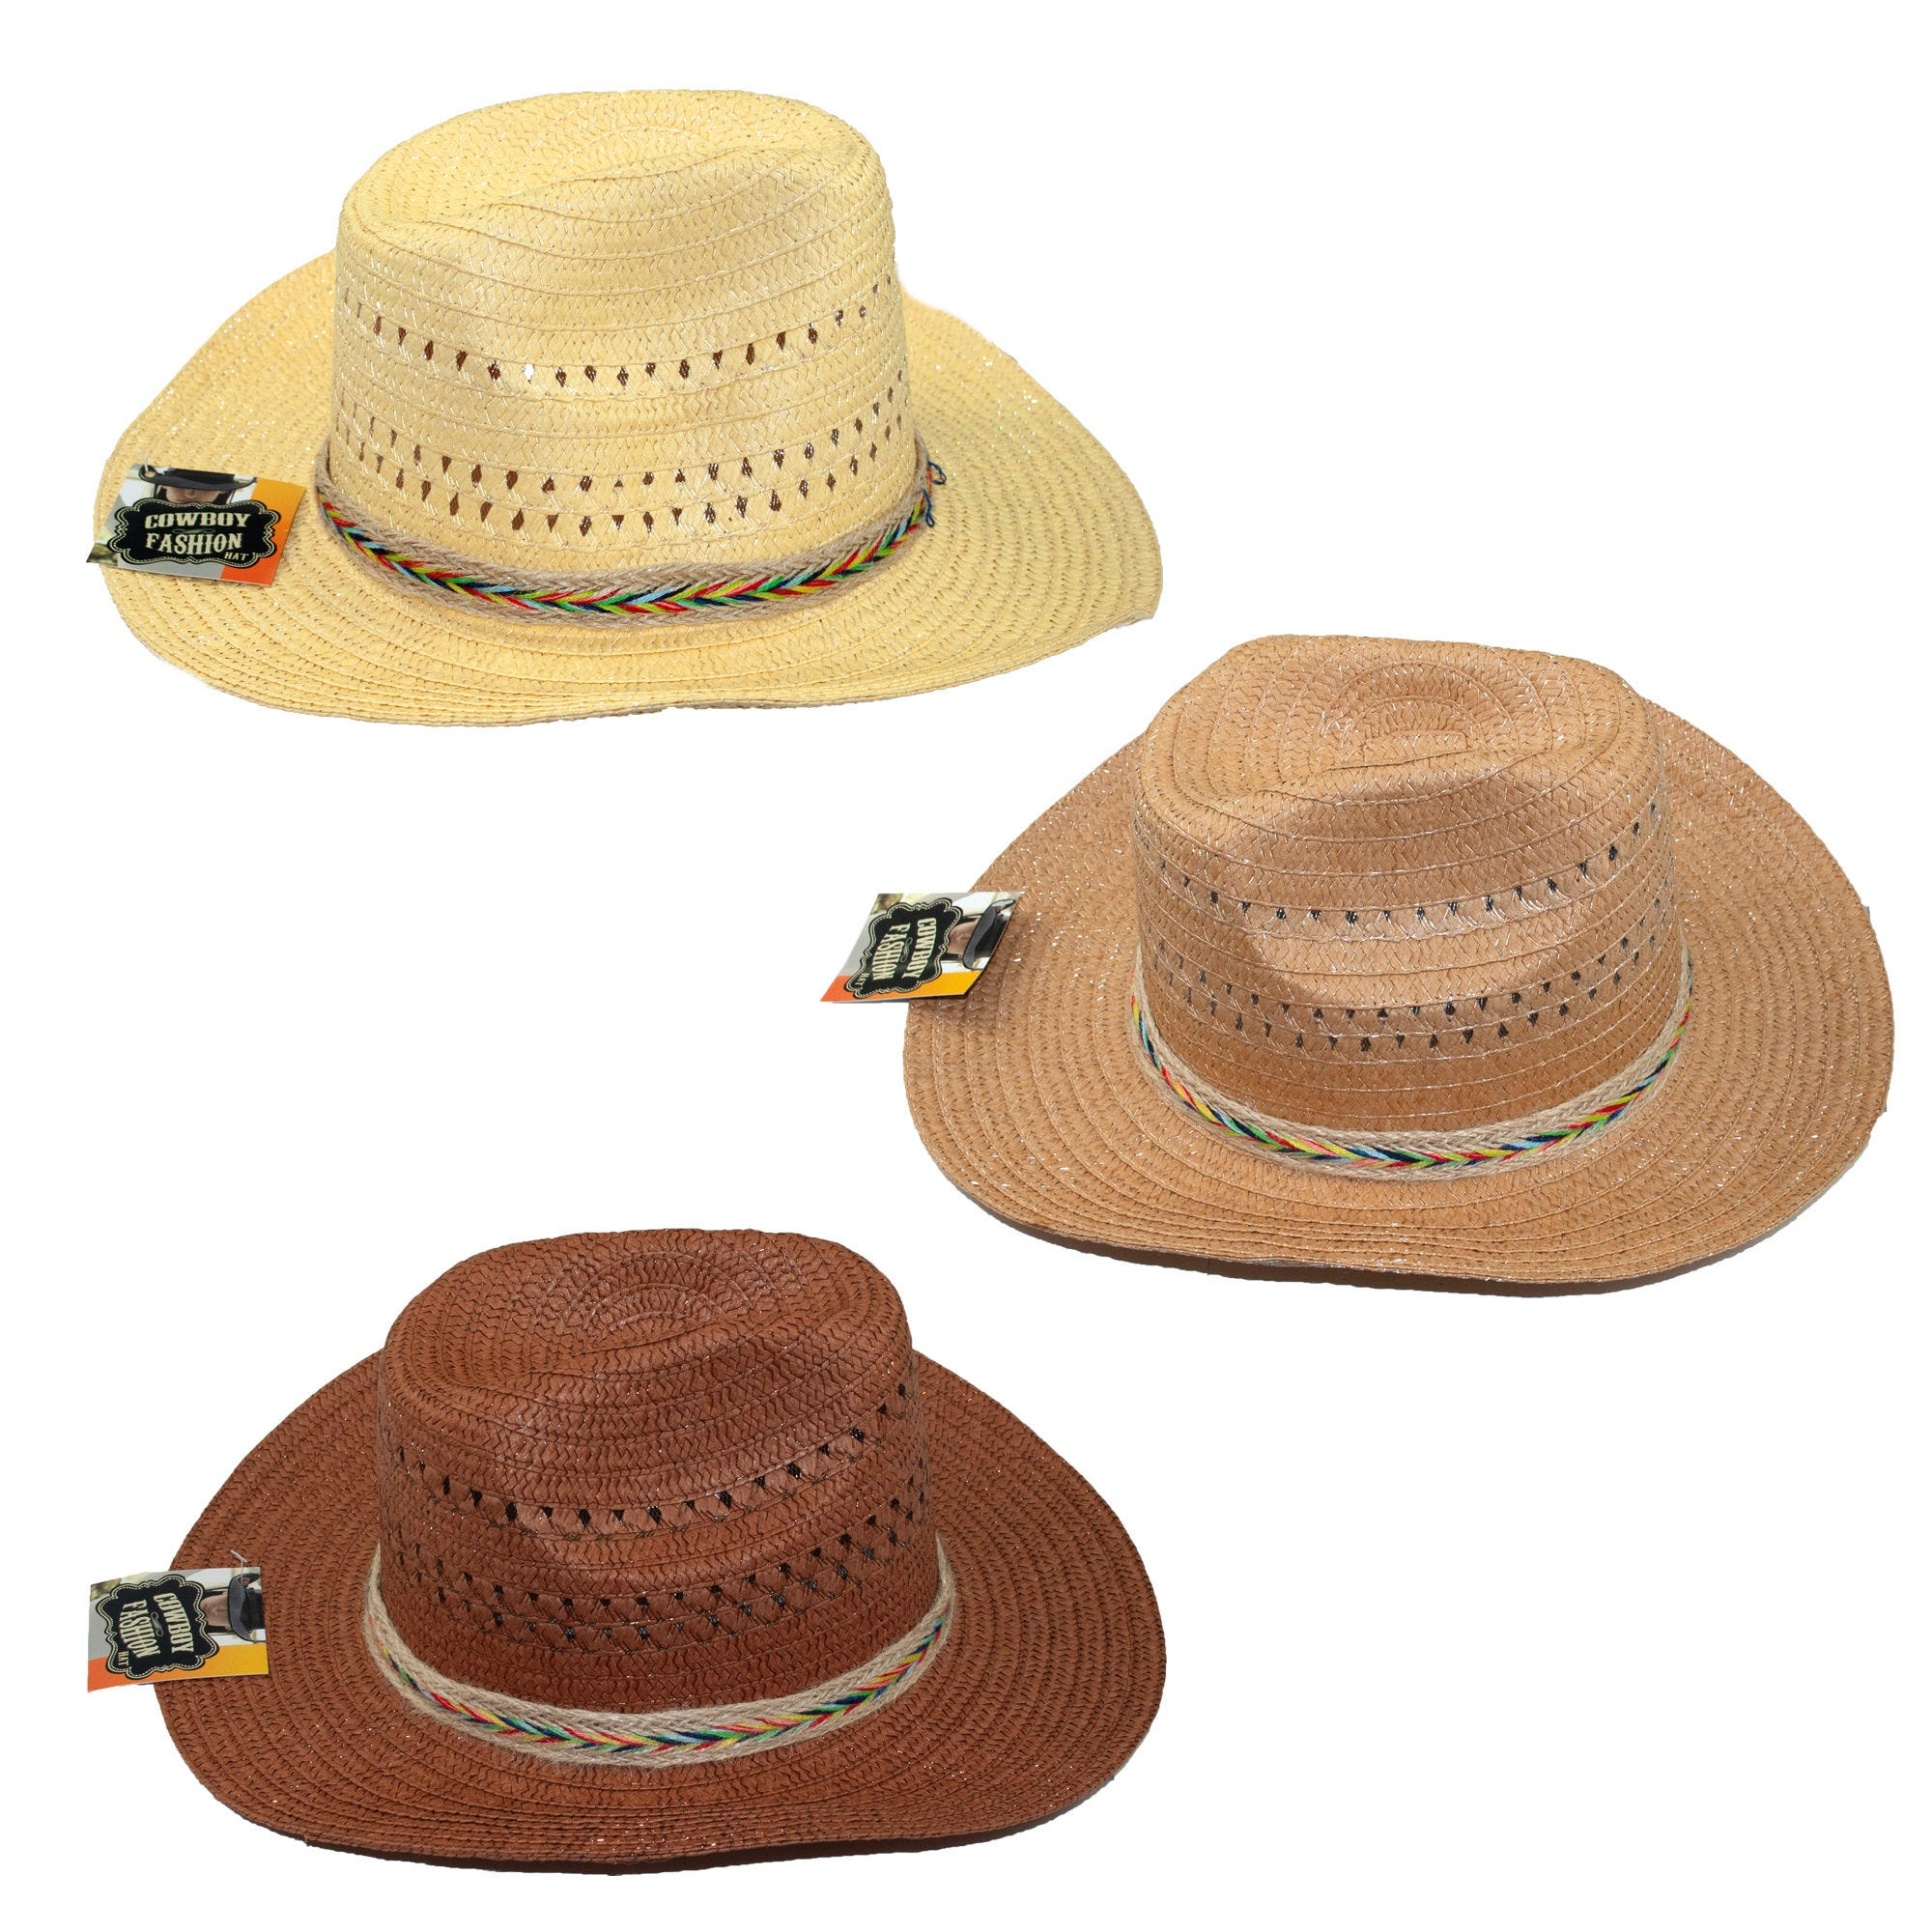 3278aa514330d Wholesale Cowboy Hat now available at Wholesale Central - Items 1 - 40